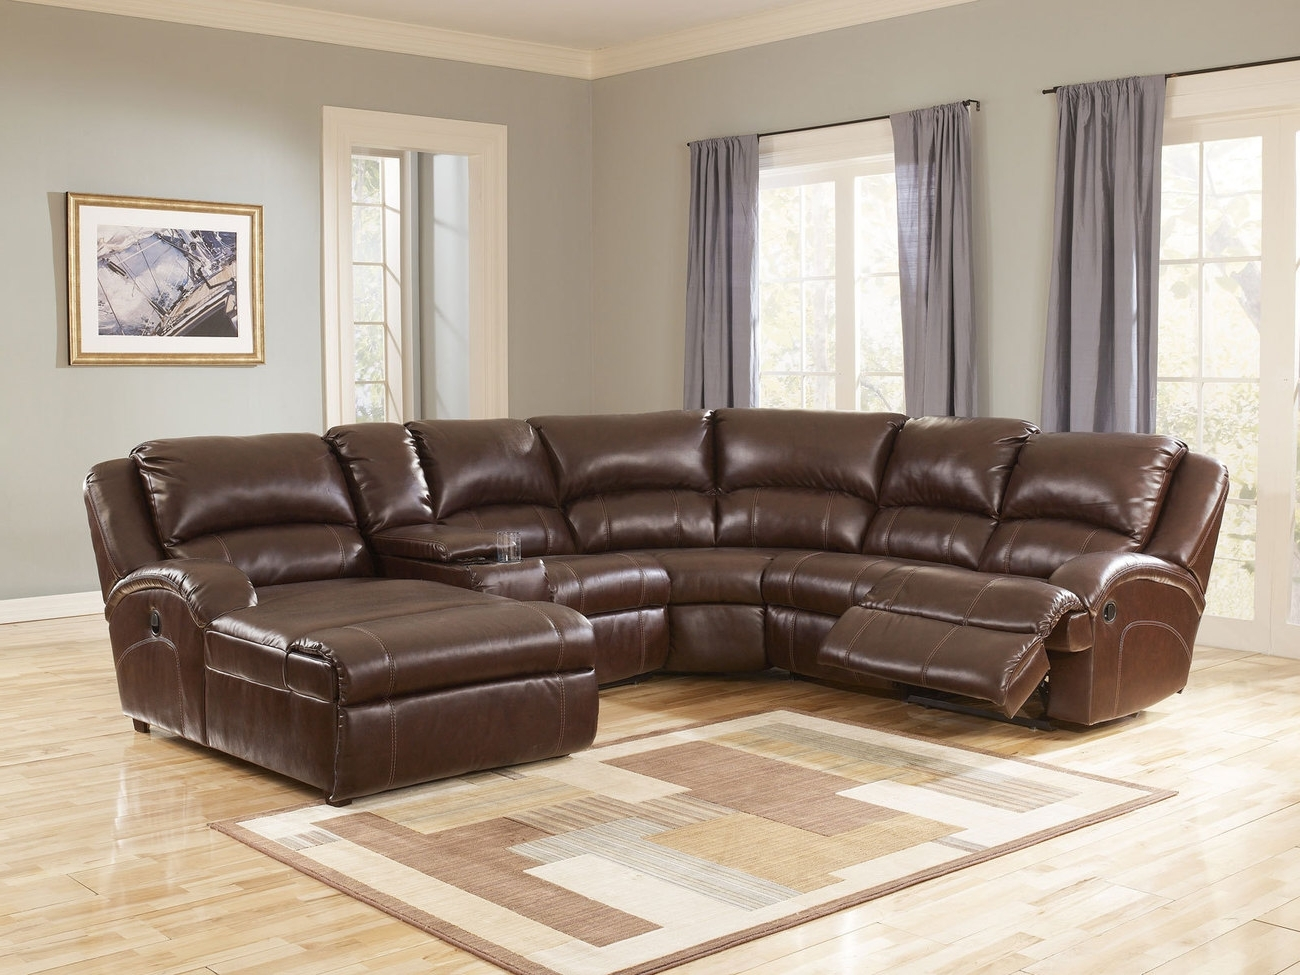 Most Up To Date Remarkable Leather Sectional Sofa With Power Recliner 21 For Your With Sectional Sofas With Power Recliners (View 8 of 20)